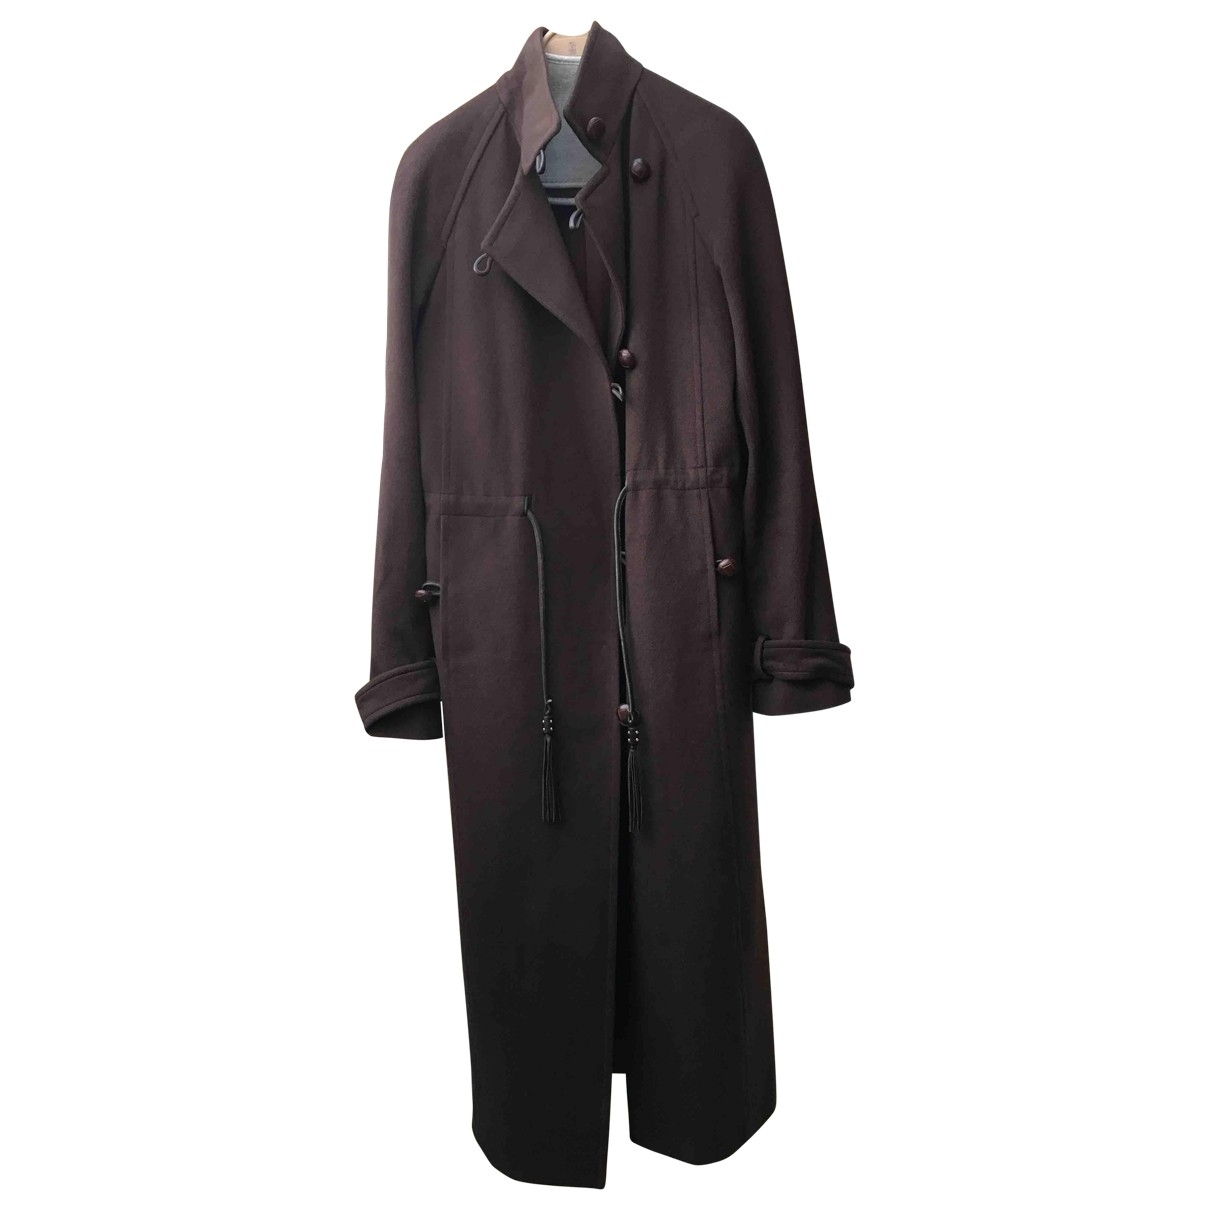 Yves Saint Laurent \N Brown Wool coat for Women 38 FR